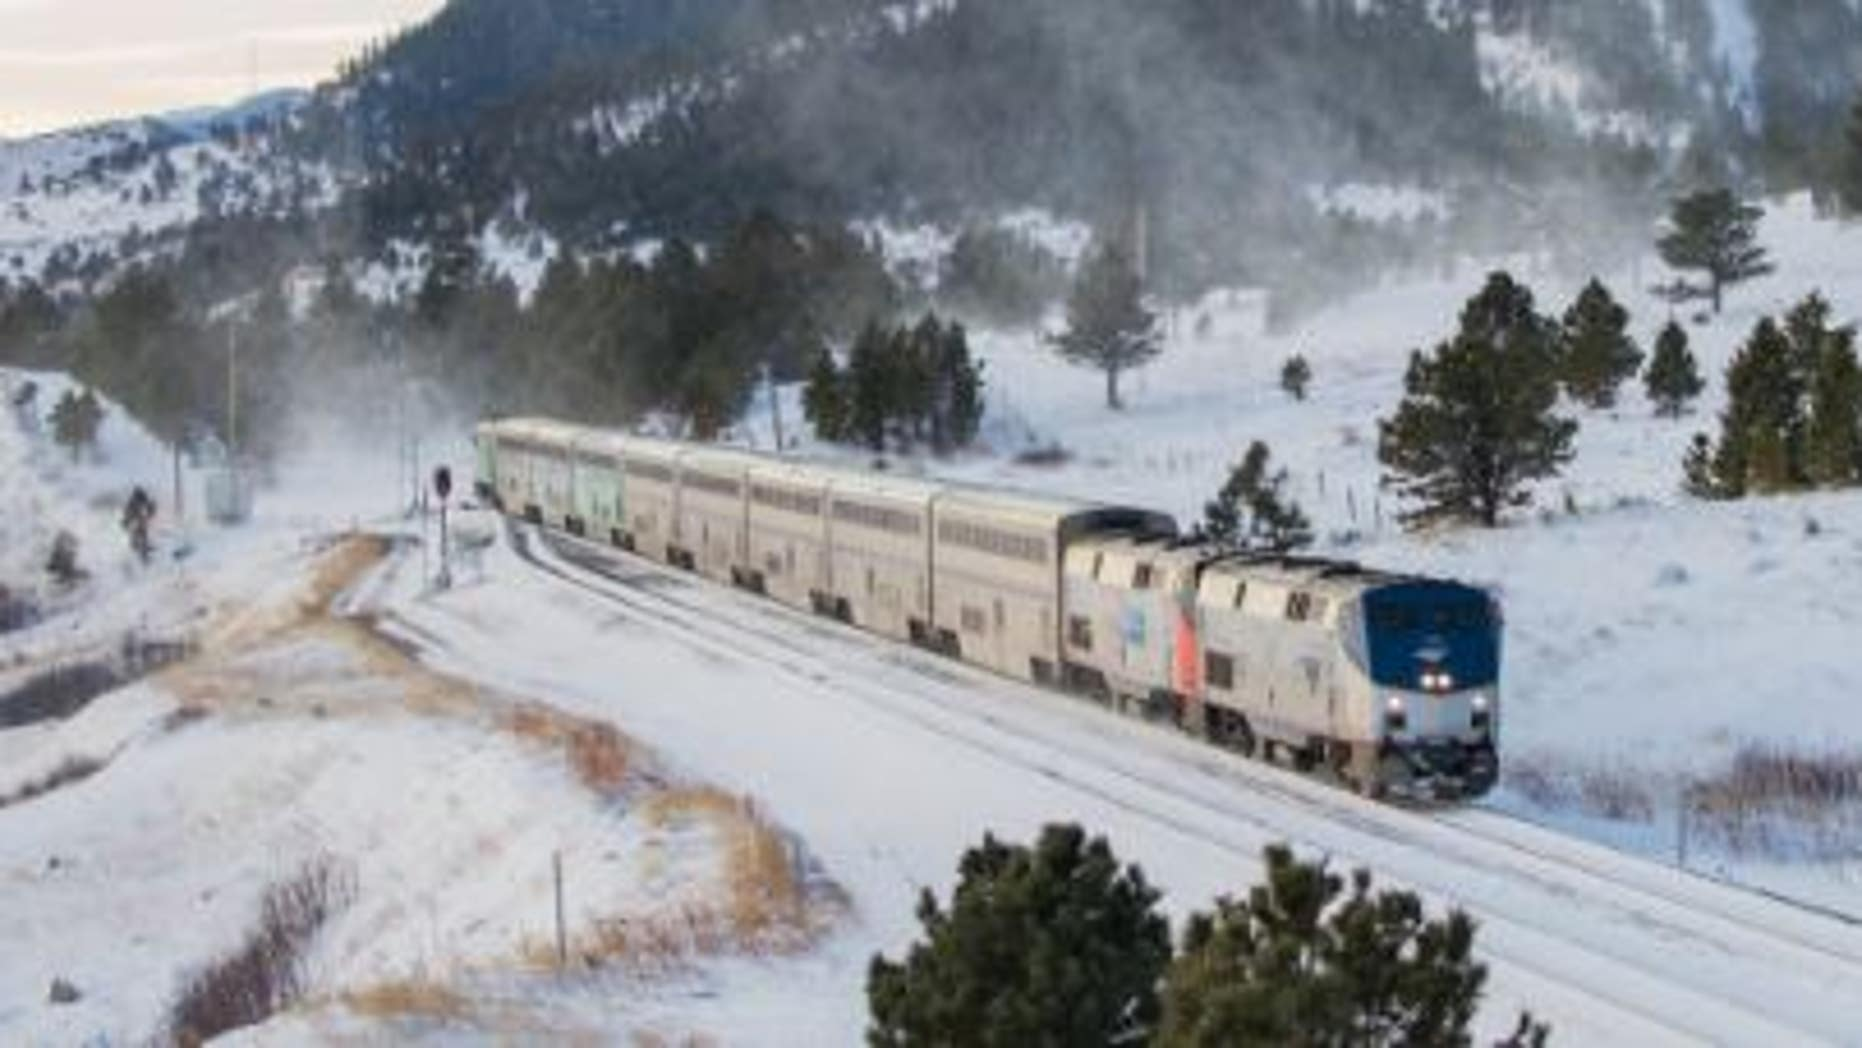 Amtrak Train With 183 Passengers Stranded In Oakridge Amid Snowstorm